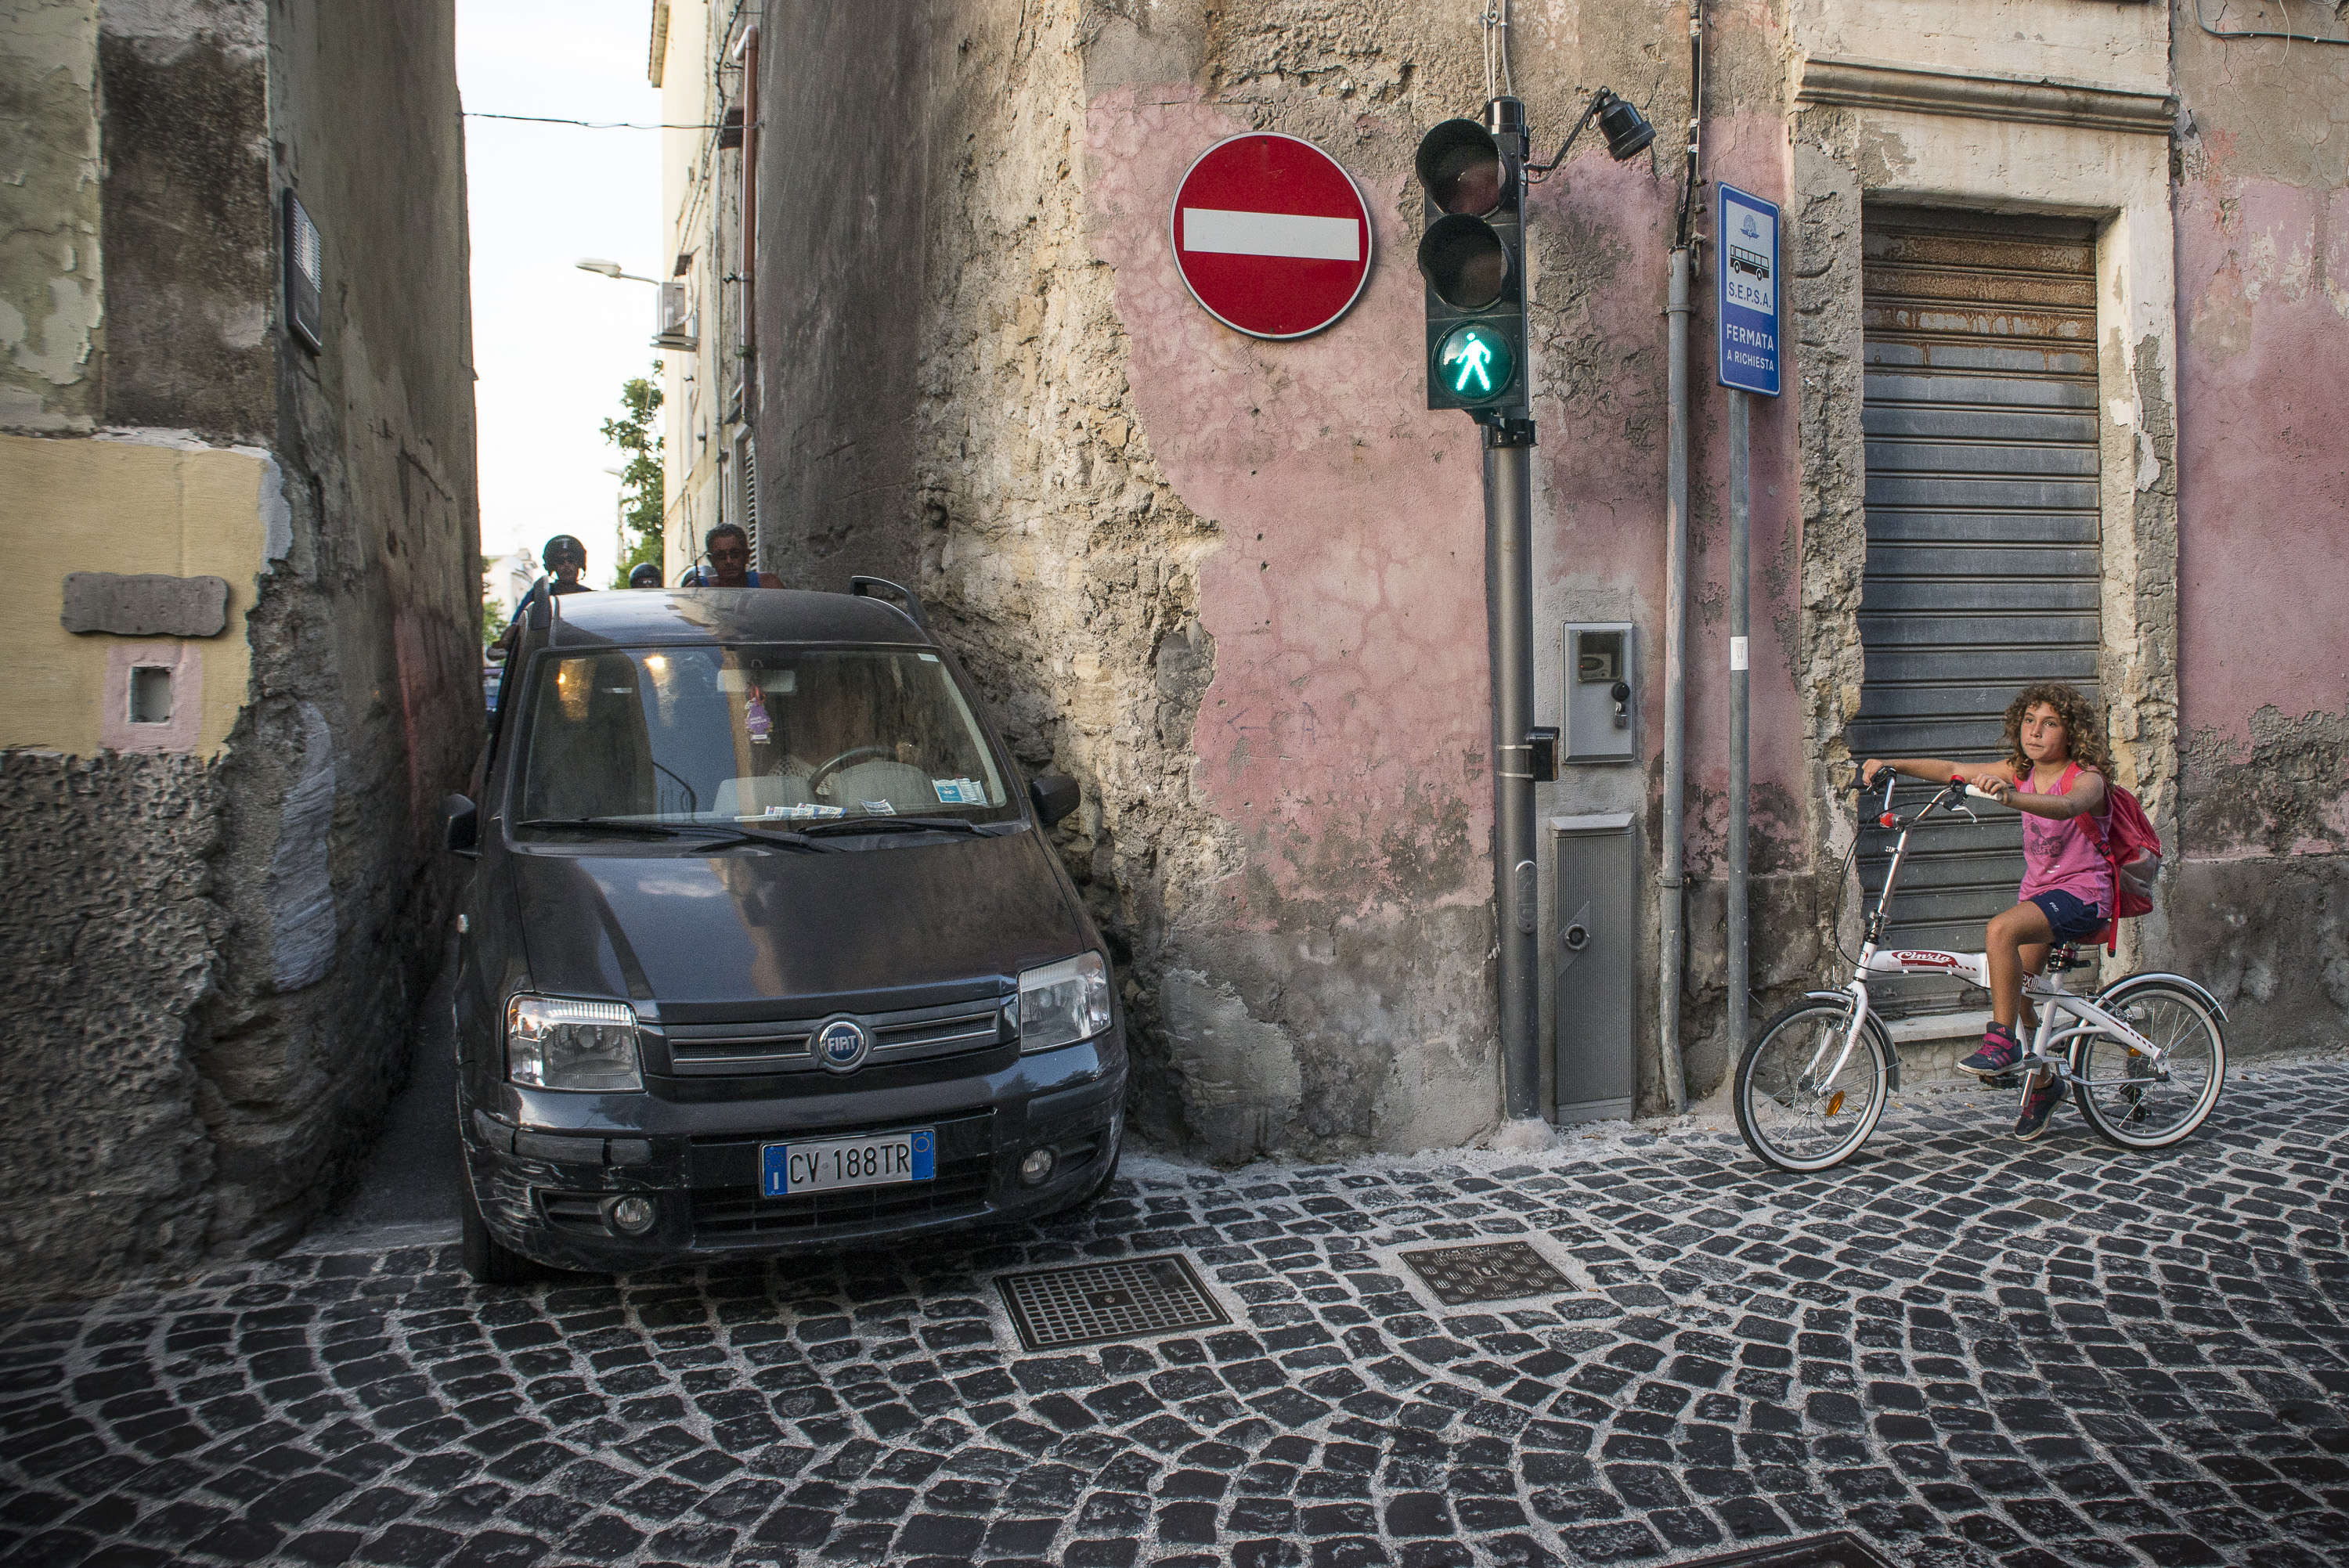 Local car passes through a narrow street that connects the main island road in Procida, Italy